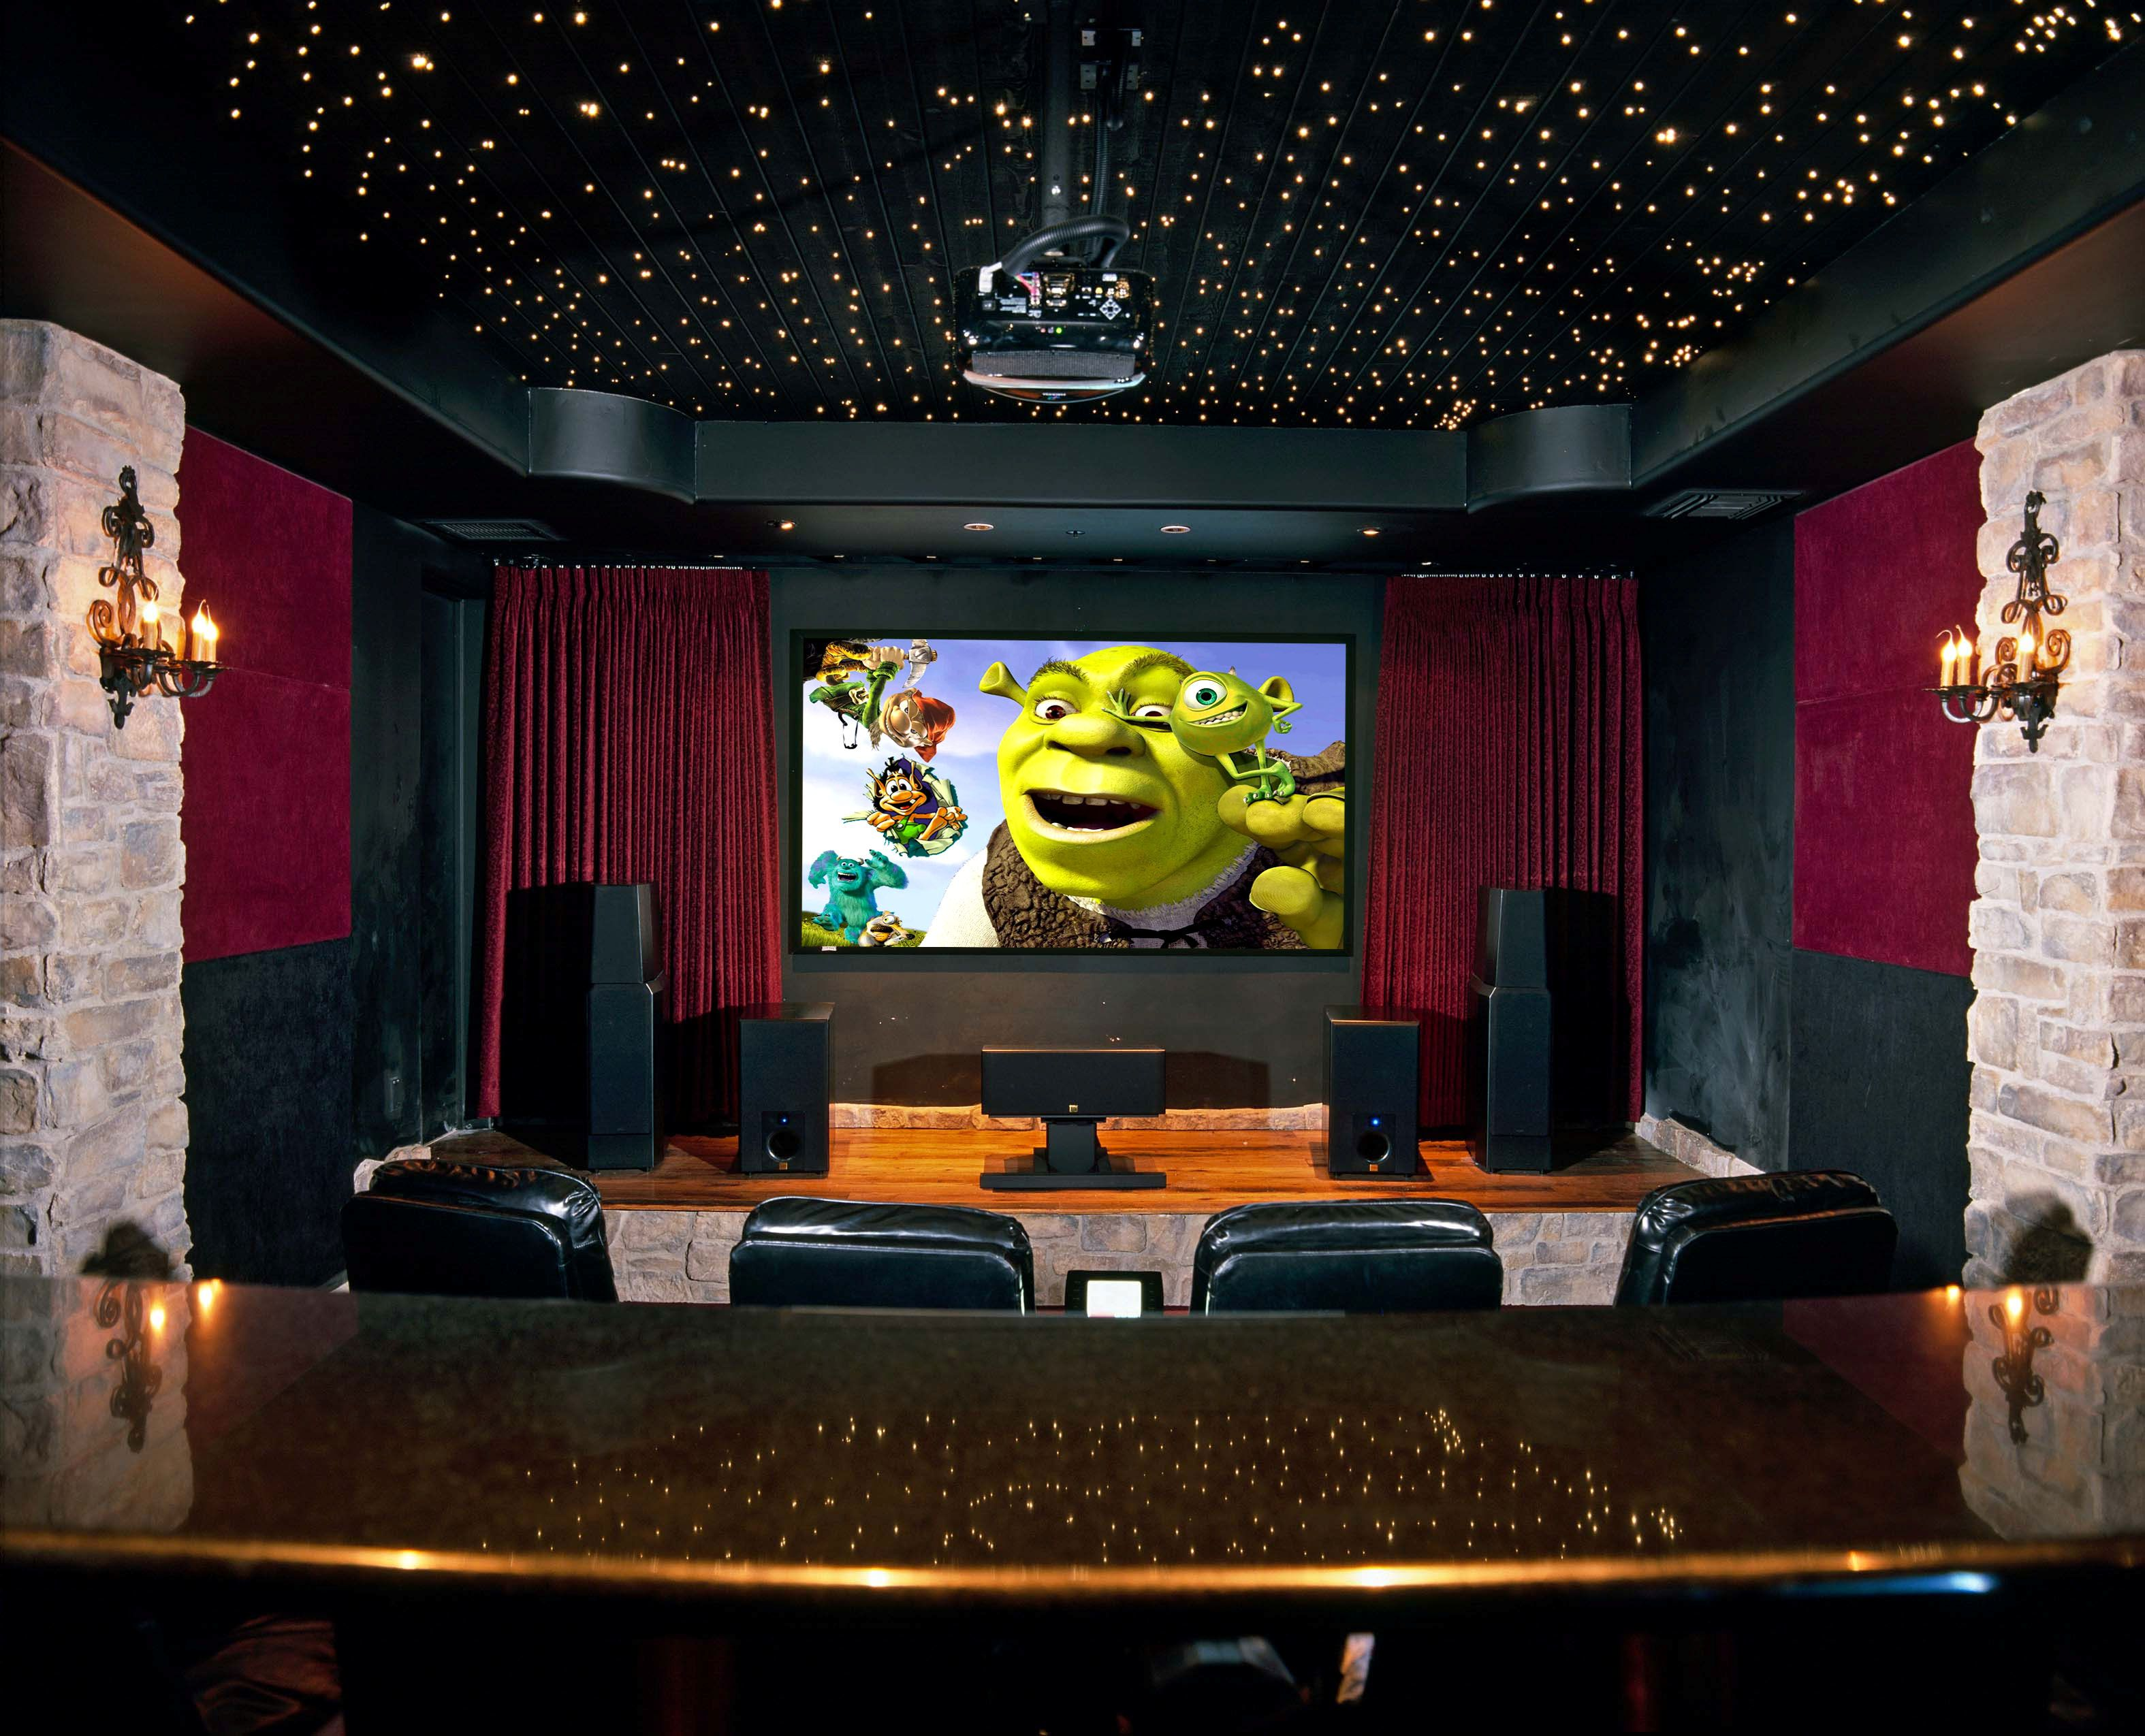 Home Theater Rooms Design Ideas find this pin and more on cine en casa hi tech home theater design ideas Decorating Beautiful Home Theater Room With Ceiling Design Full Of Stars And Black Leather Seats Ideas